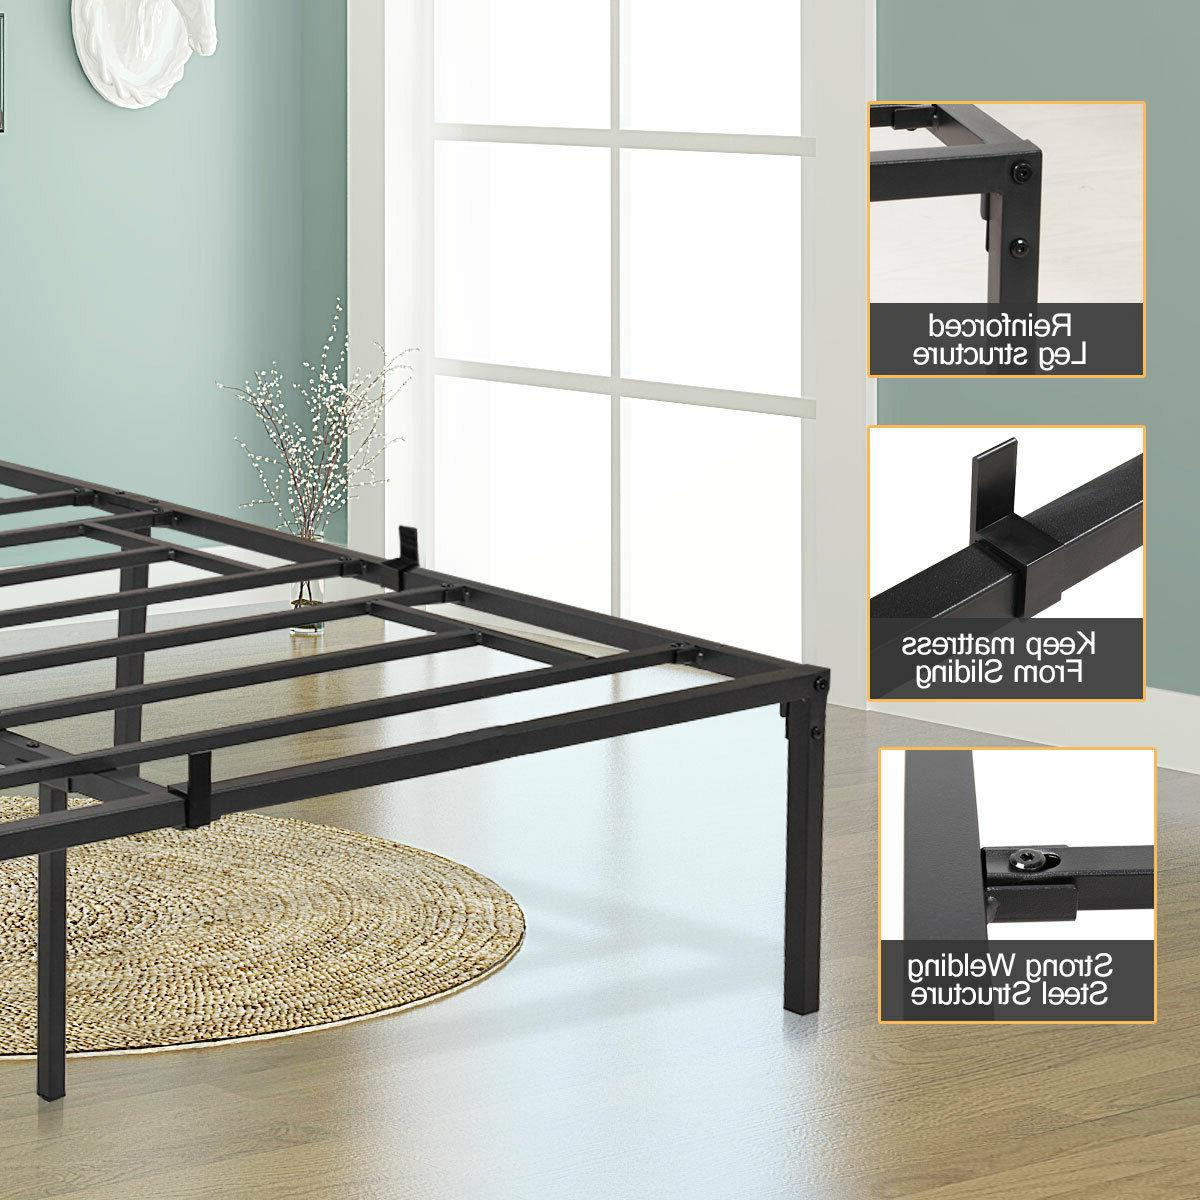 Easy Setup Bed Mattress Foundation wUnder Queen Size